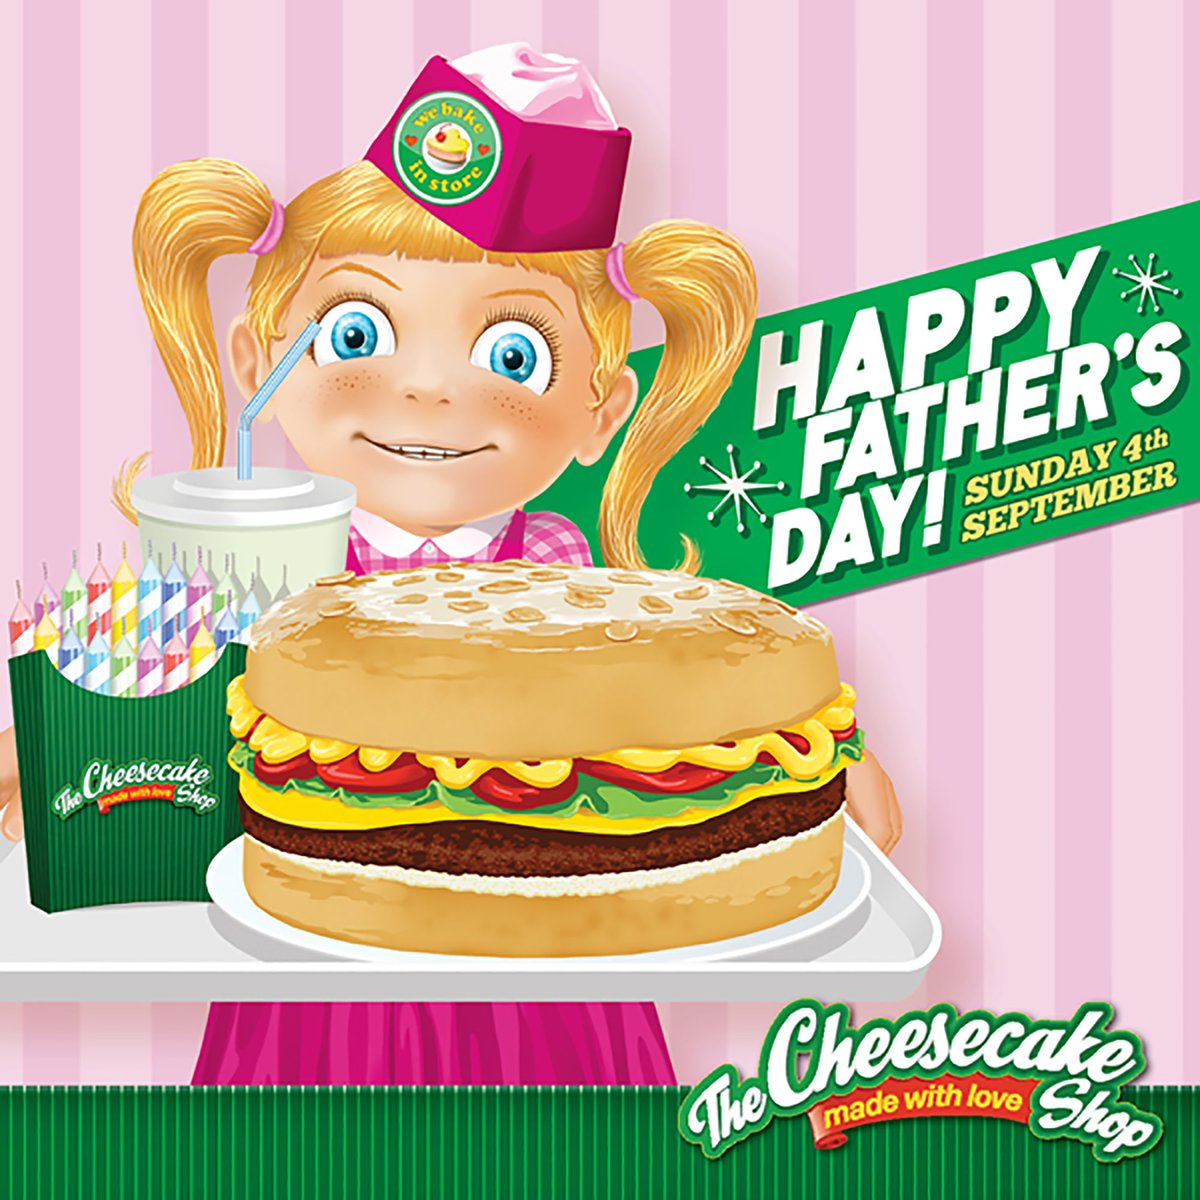 The Cheesecake Shop On Twitter Surprise Dad This Fathers Day With